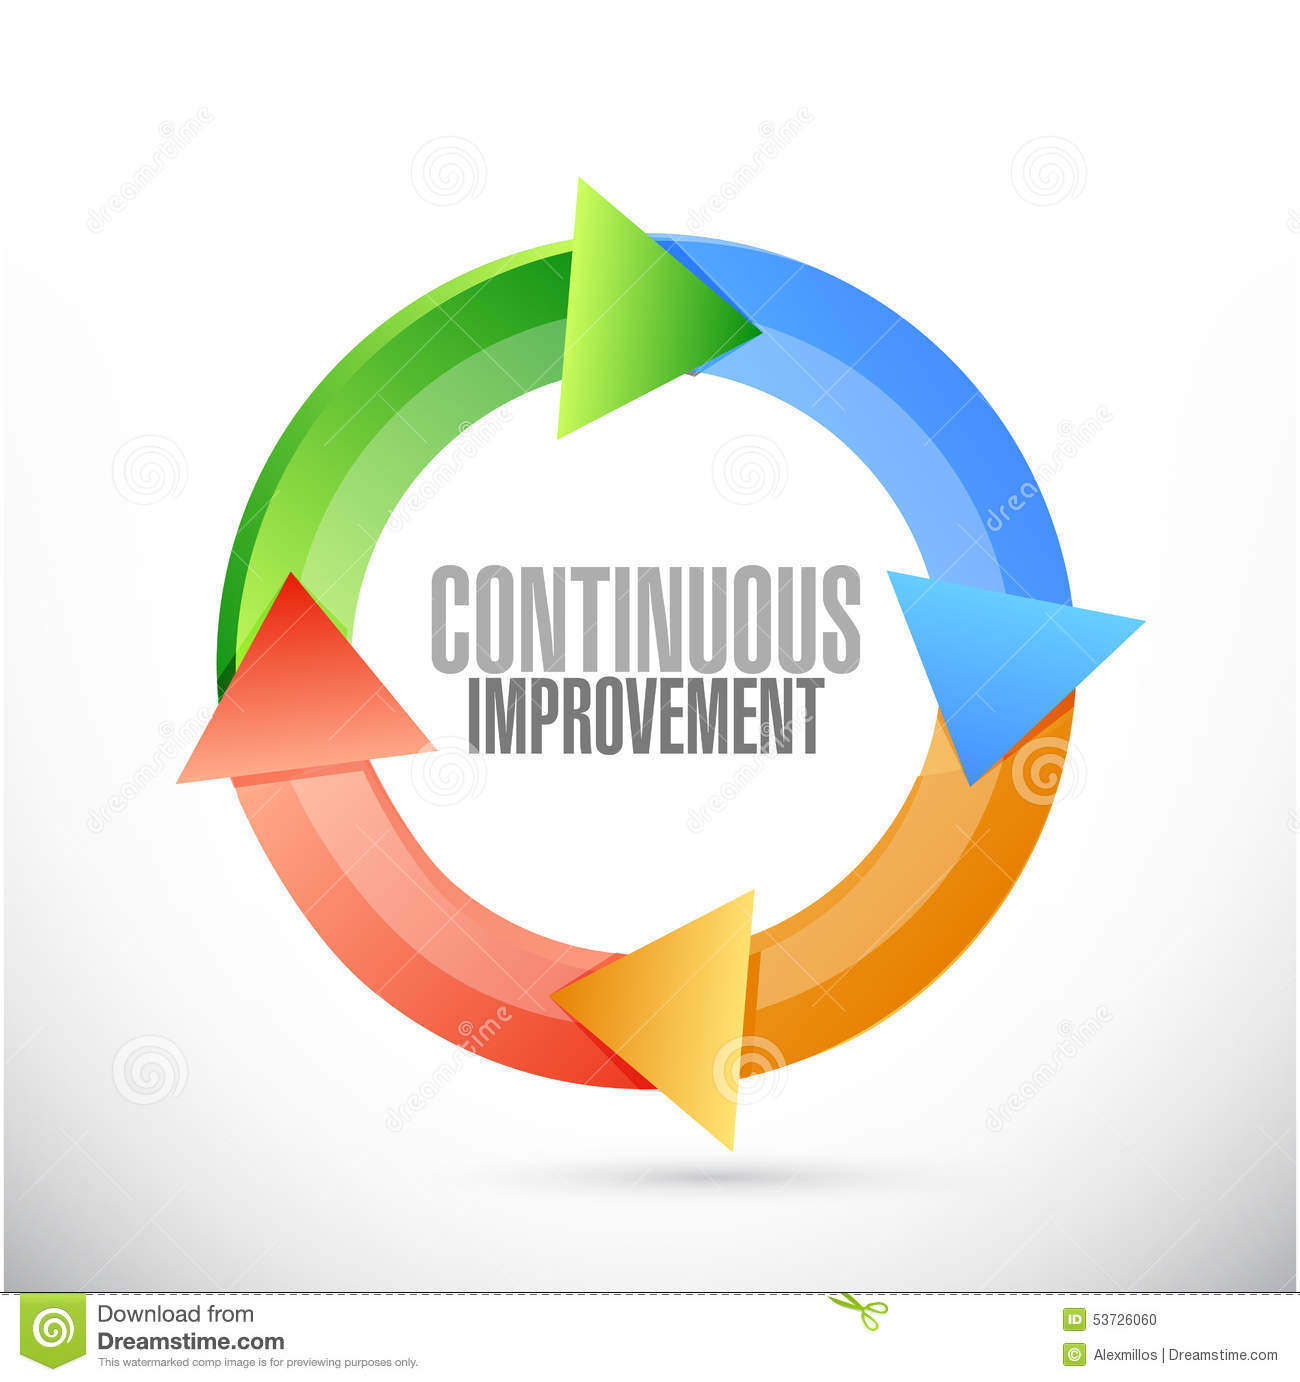 the role of continuous improvement The role of continual improvement is one of the most important principles in any quality management strategy, and enables a core goal for all improvement practices within the organisation the iso (international organization for standardization) has the following to say about continuous improvement:.